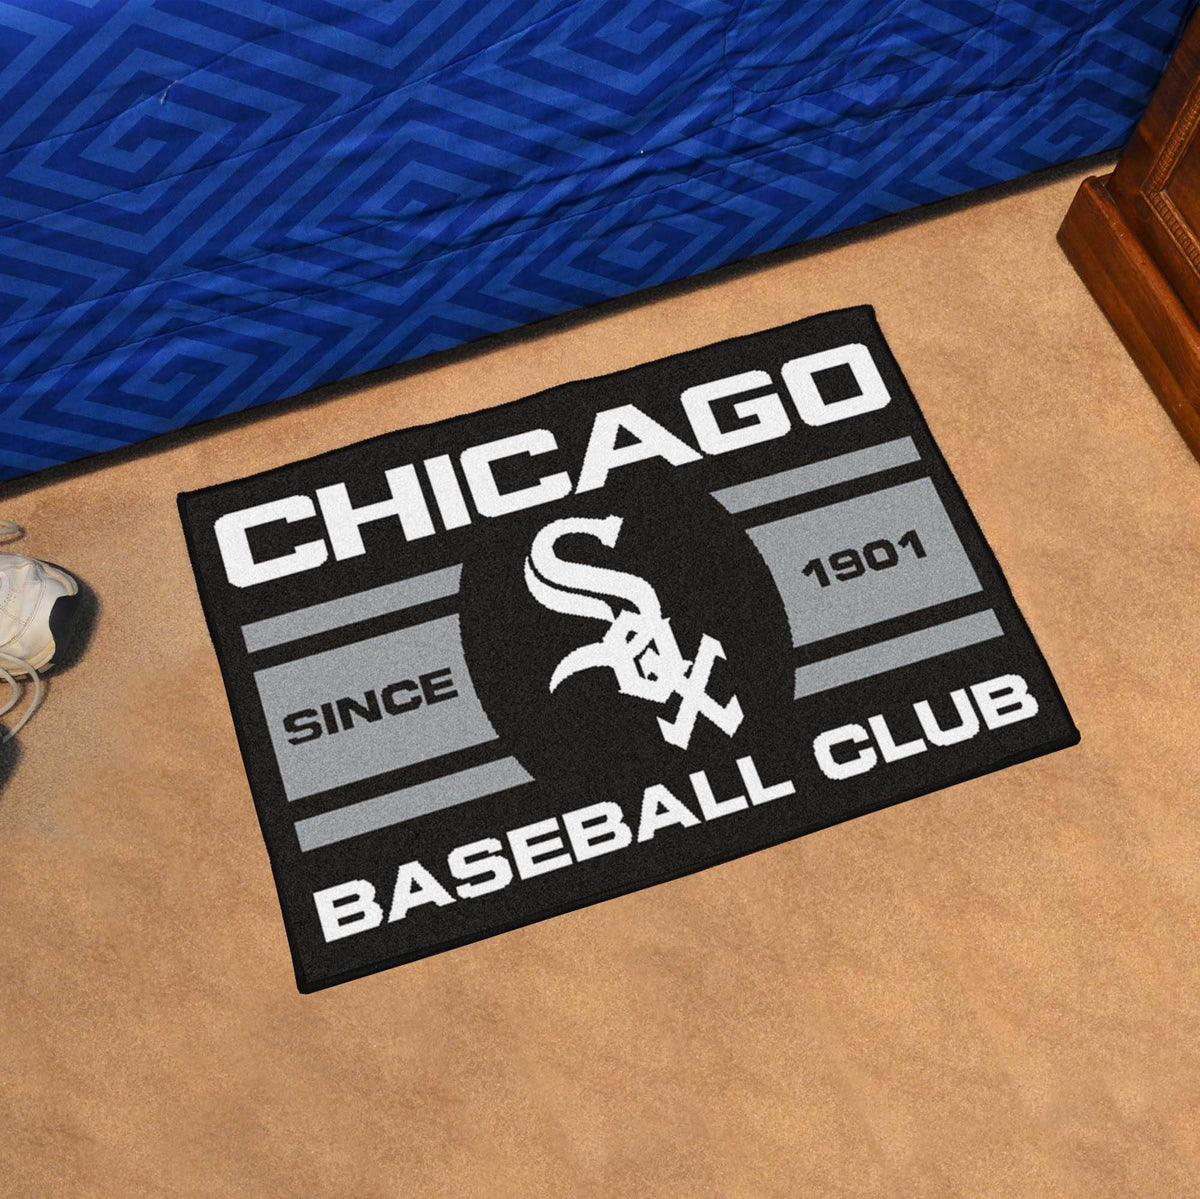 MLB - Uniform Starter Mat MLB Mats, Rectangular Mats, Uniform Starter Mat, MLB, Home Fan Mats Chicago White Sox